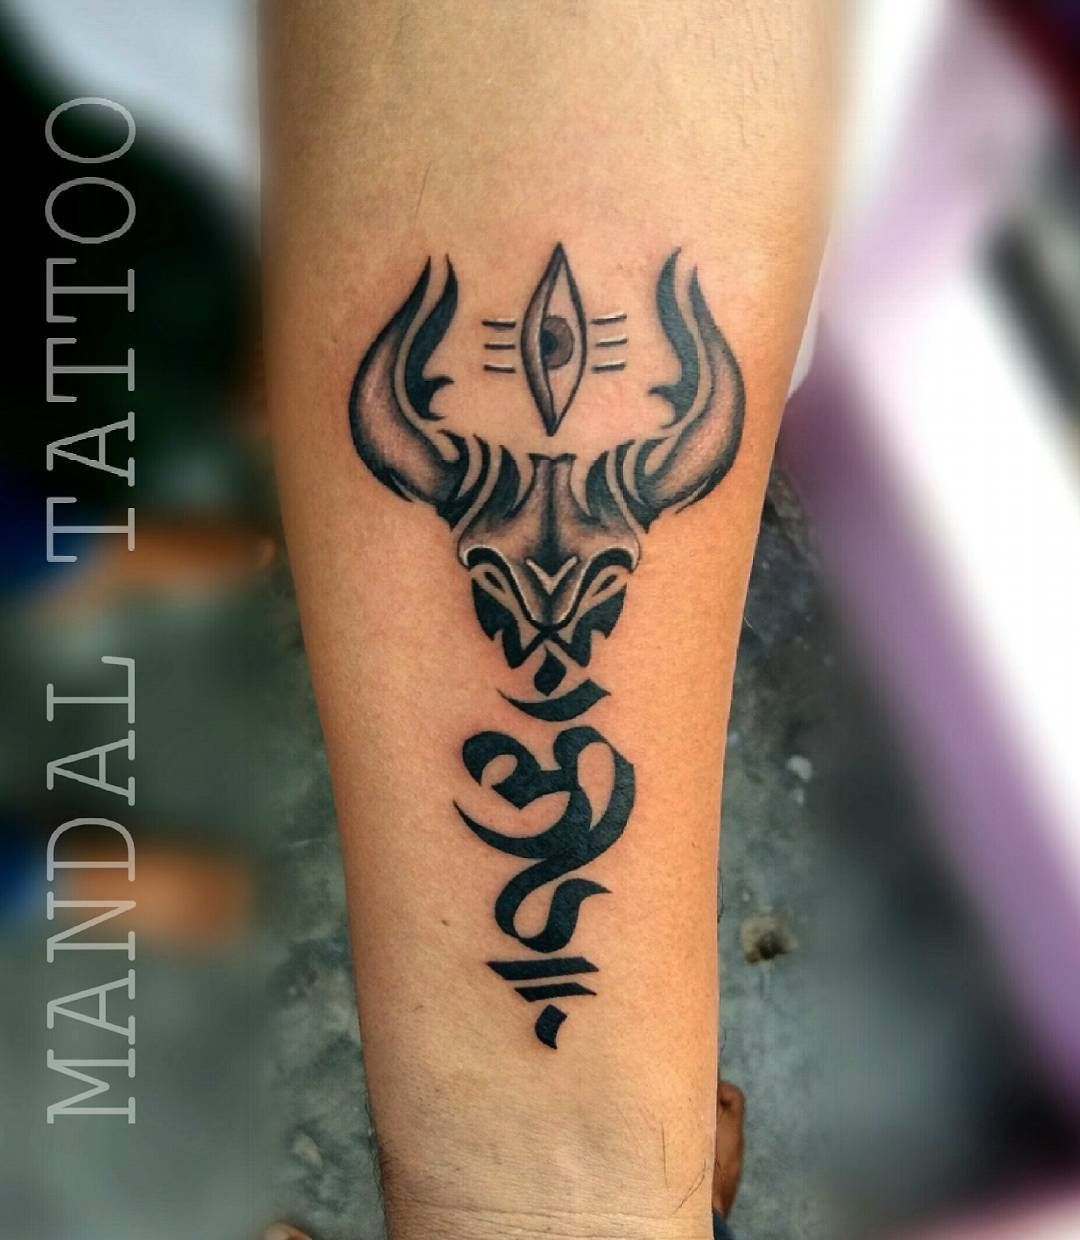 Om Trishul Nandi Tattoo By Lalit Sn Mandaltattoo Trishul Tattoo Designs Om Tattoo Design Shiva Tattoo Design